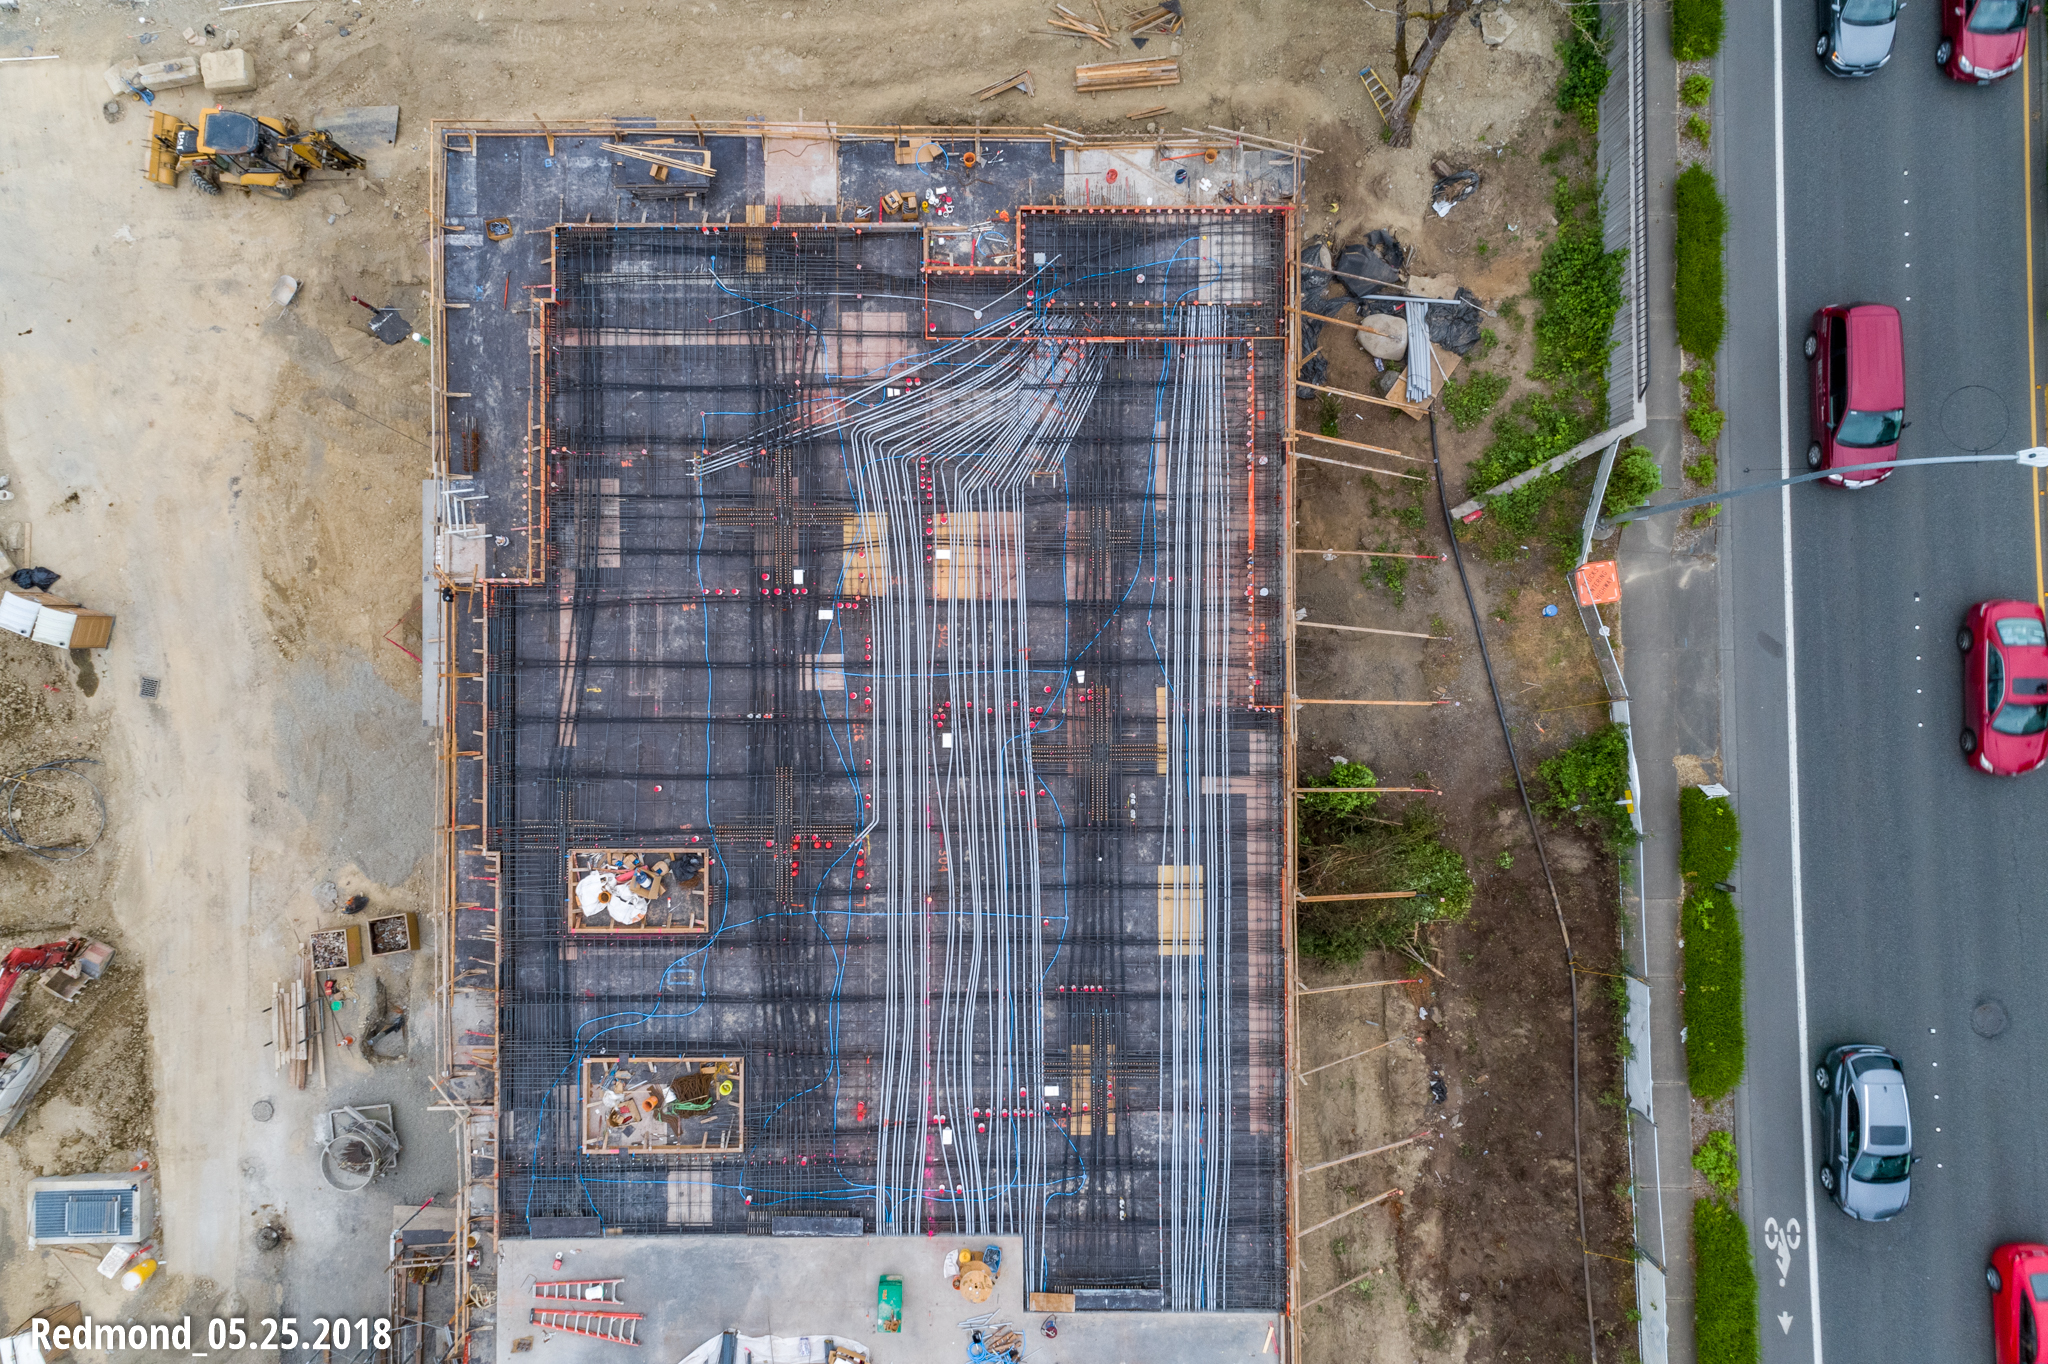 Kyle Ventle_NorthWest Drone Works_ Redmond Construction Aerial Photography-11.jpg